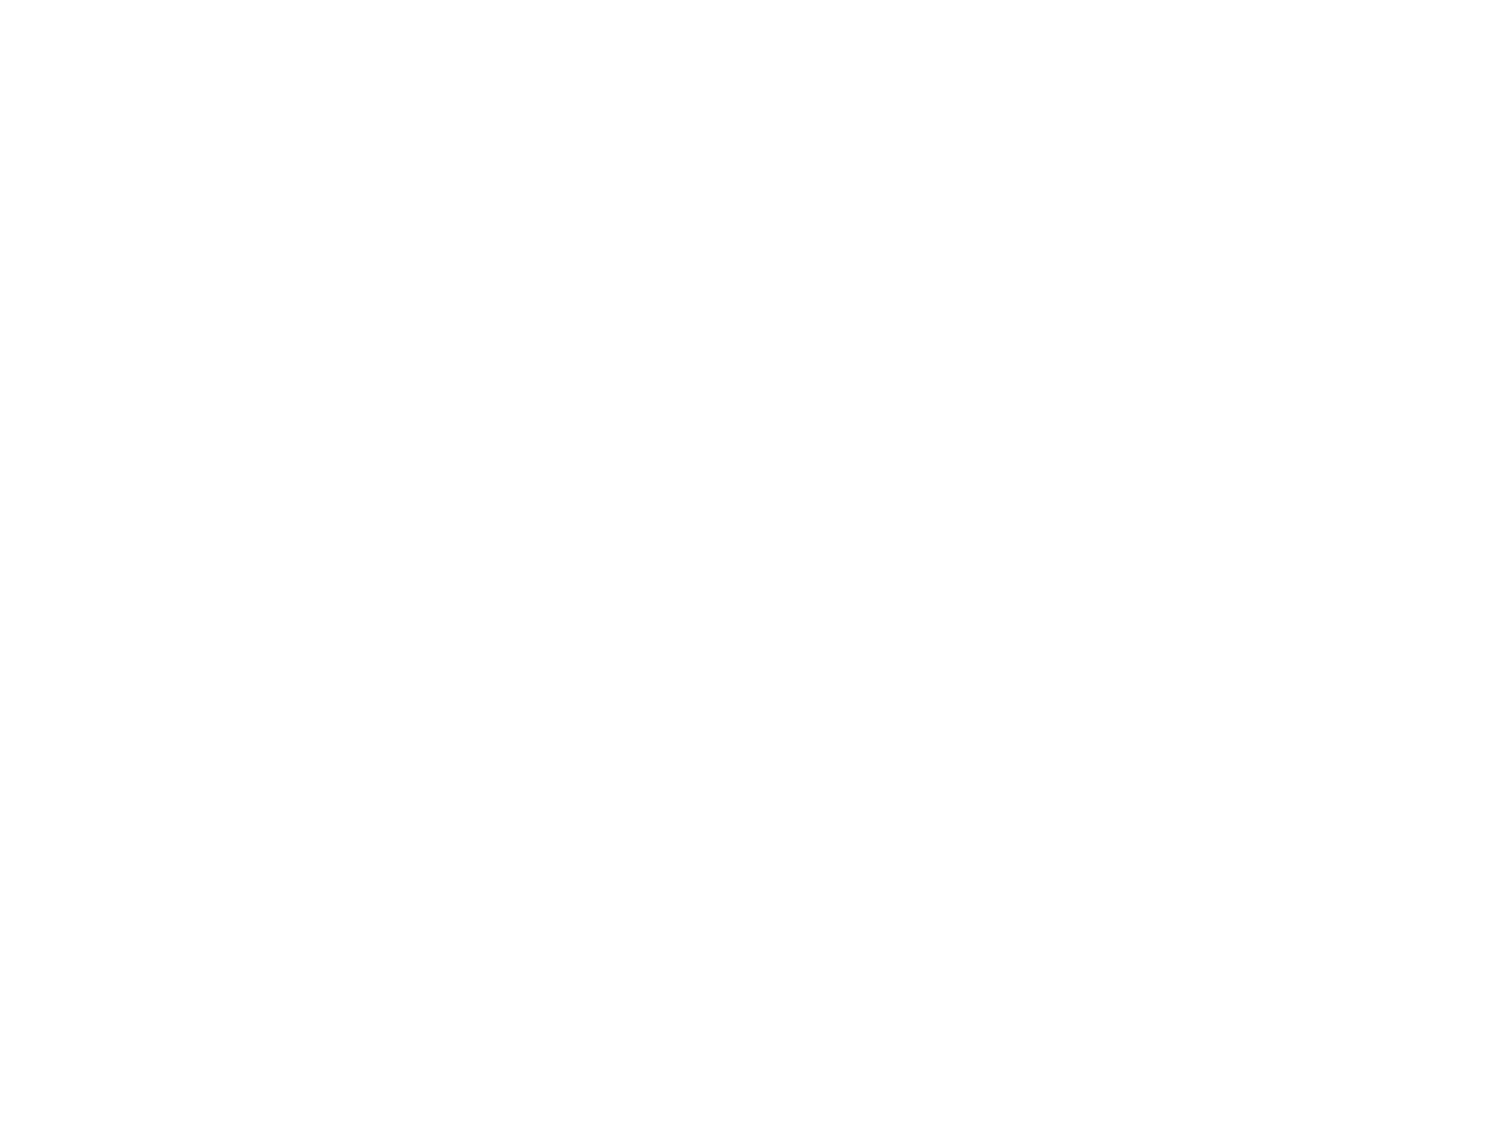 Ryal Side Auto Center